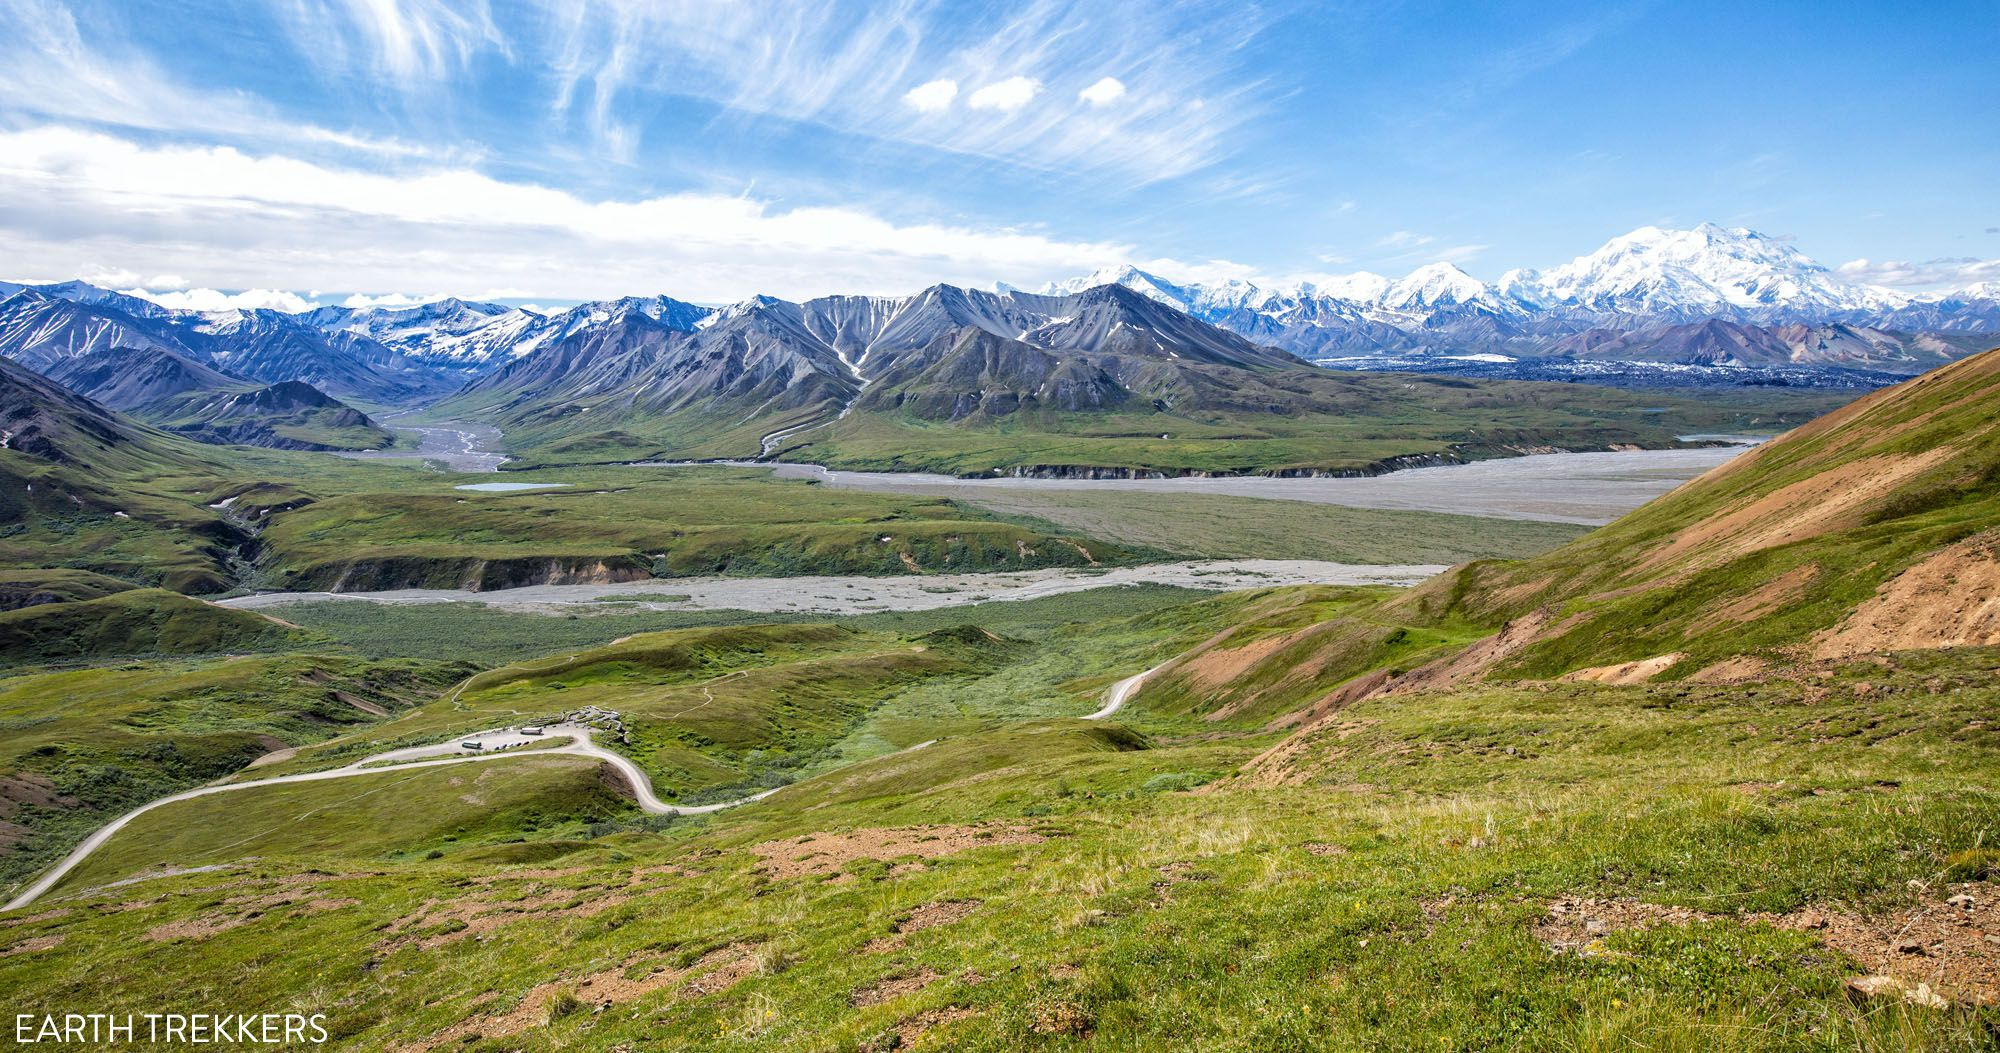 How to Visit Eielson Denali